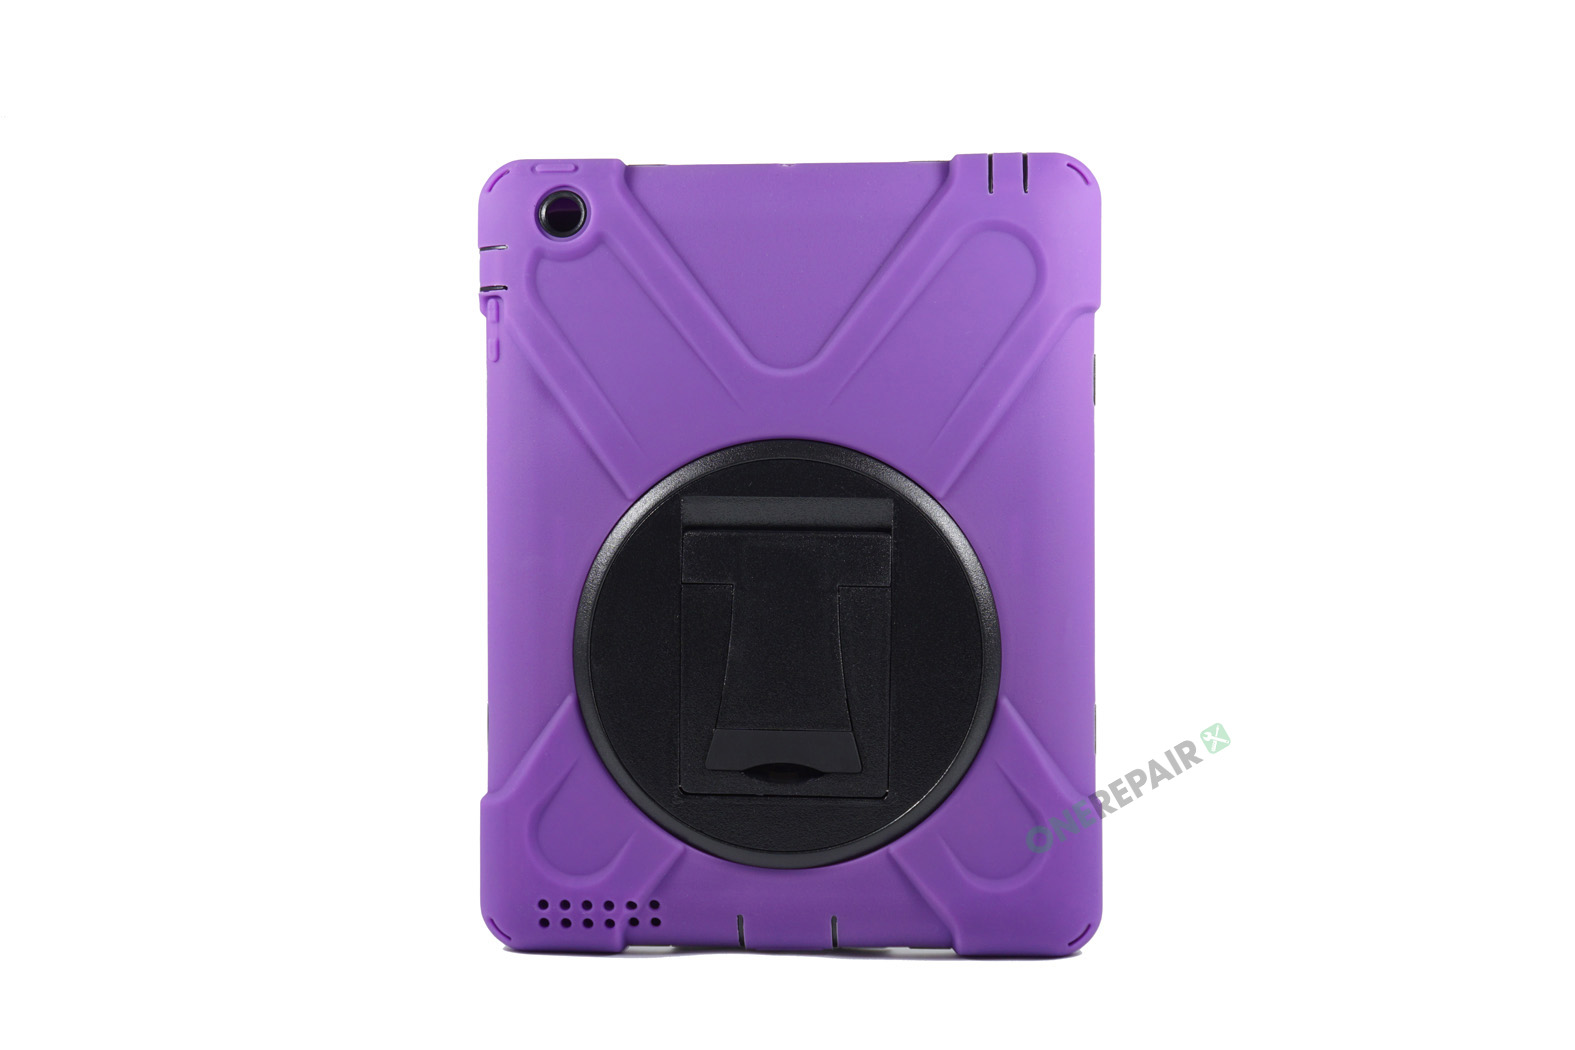 350983_iPad_2_3_4_A1395_A1396_A1430_A1403_1458_A1459_A1460_A1397_3-in-1_Bagcover_Cover_Børne_Skole_Hardcase_Lilla_Billig_Godt_Beskyttelse_OneRepair_WM_00001